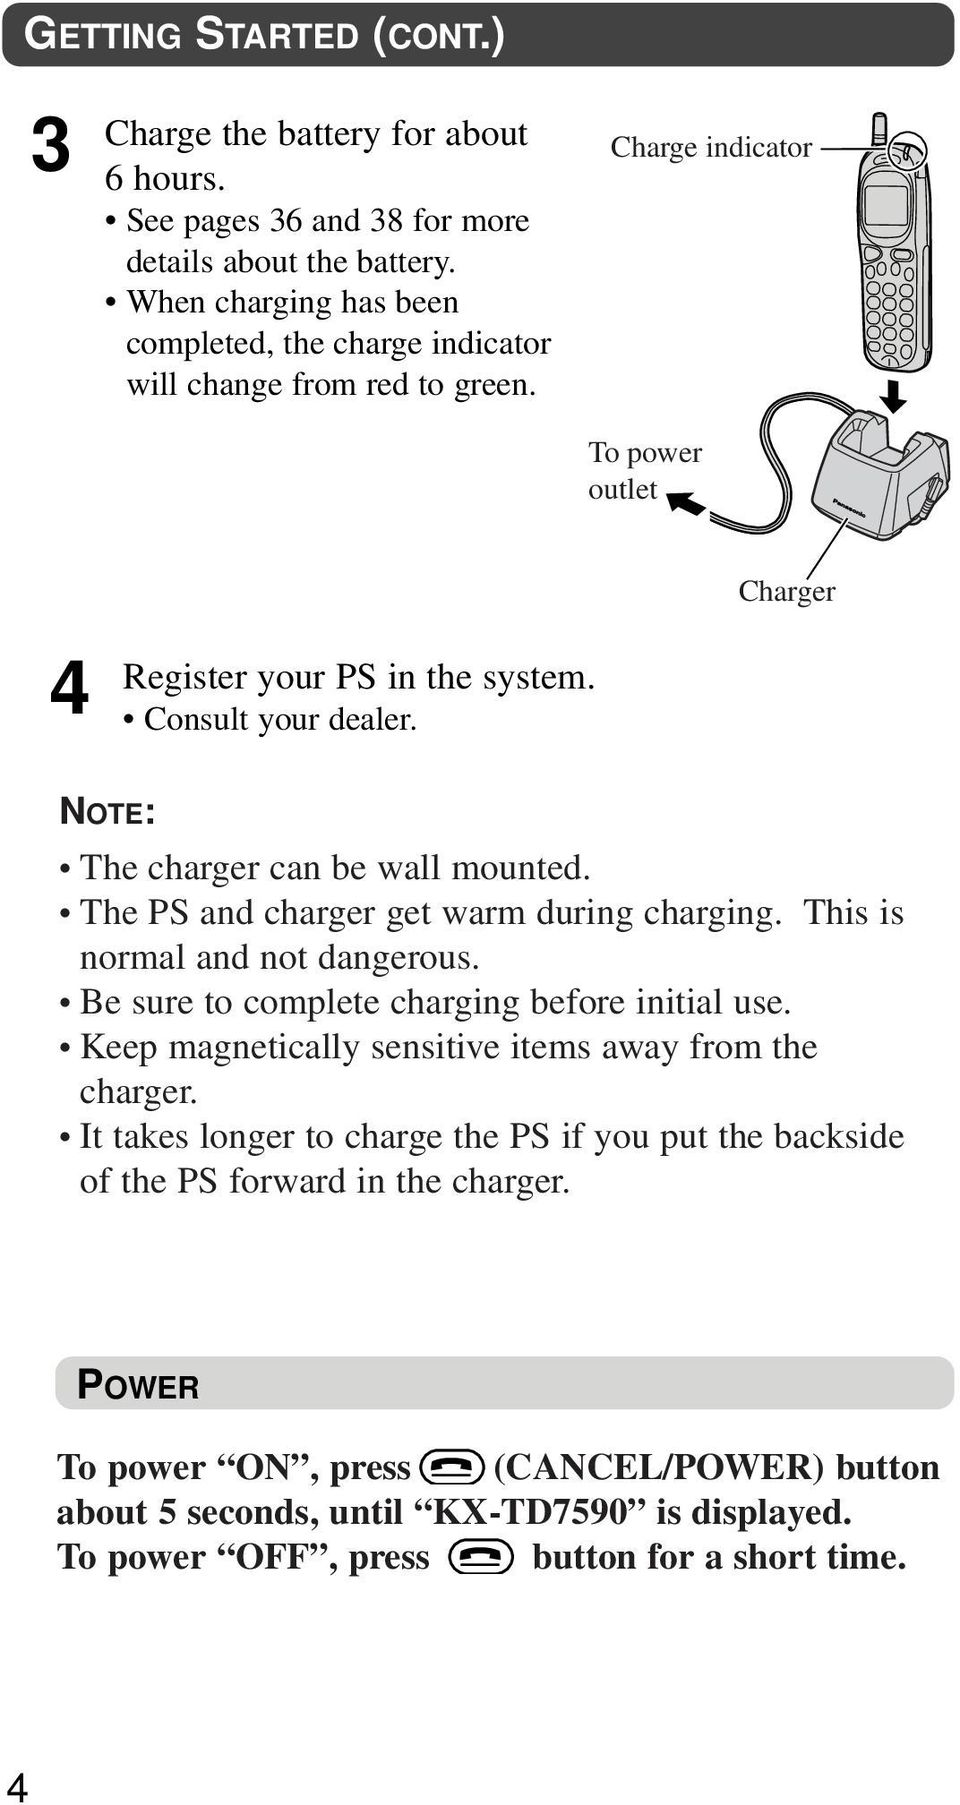 Charger NOTE: The charger can be wall mounted. The PS and charger get warm during charging. This is normal and not dangerous. Be sure to complete charging before initial use.